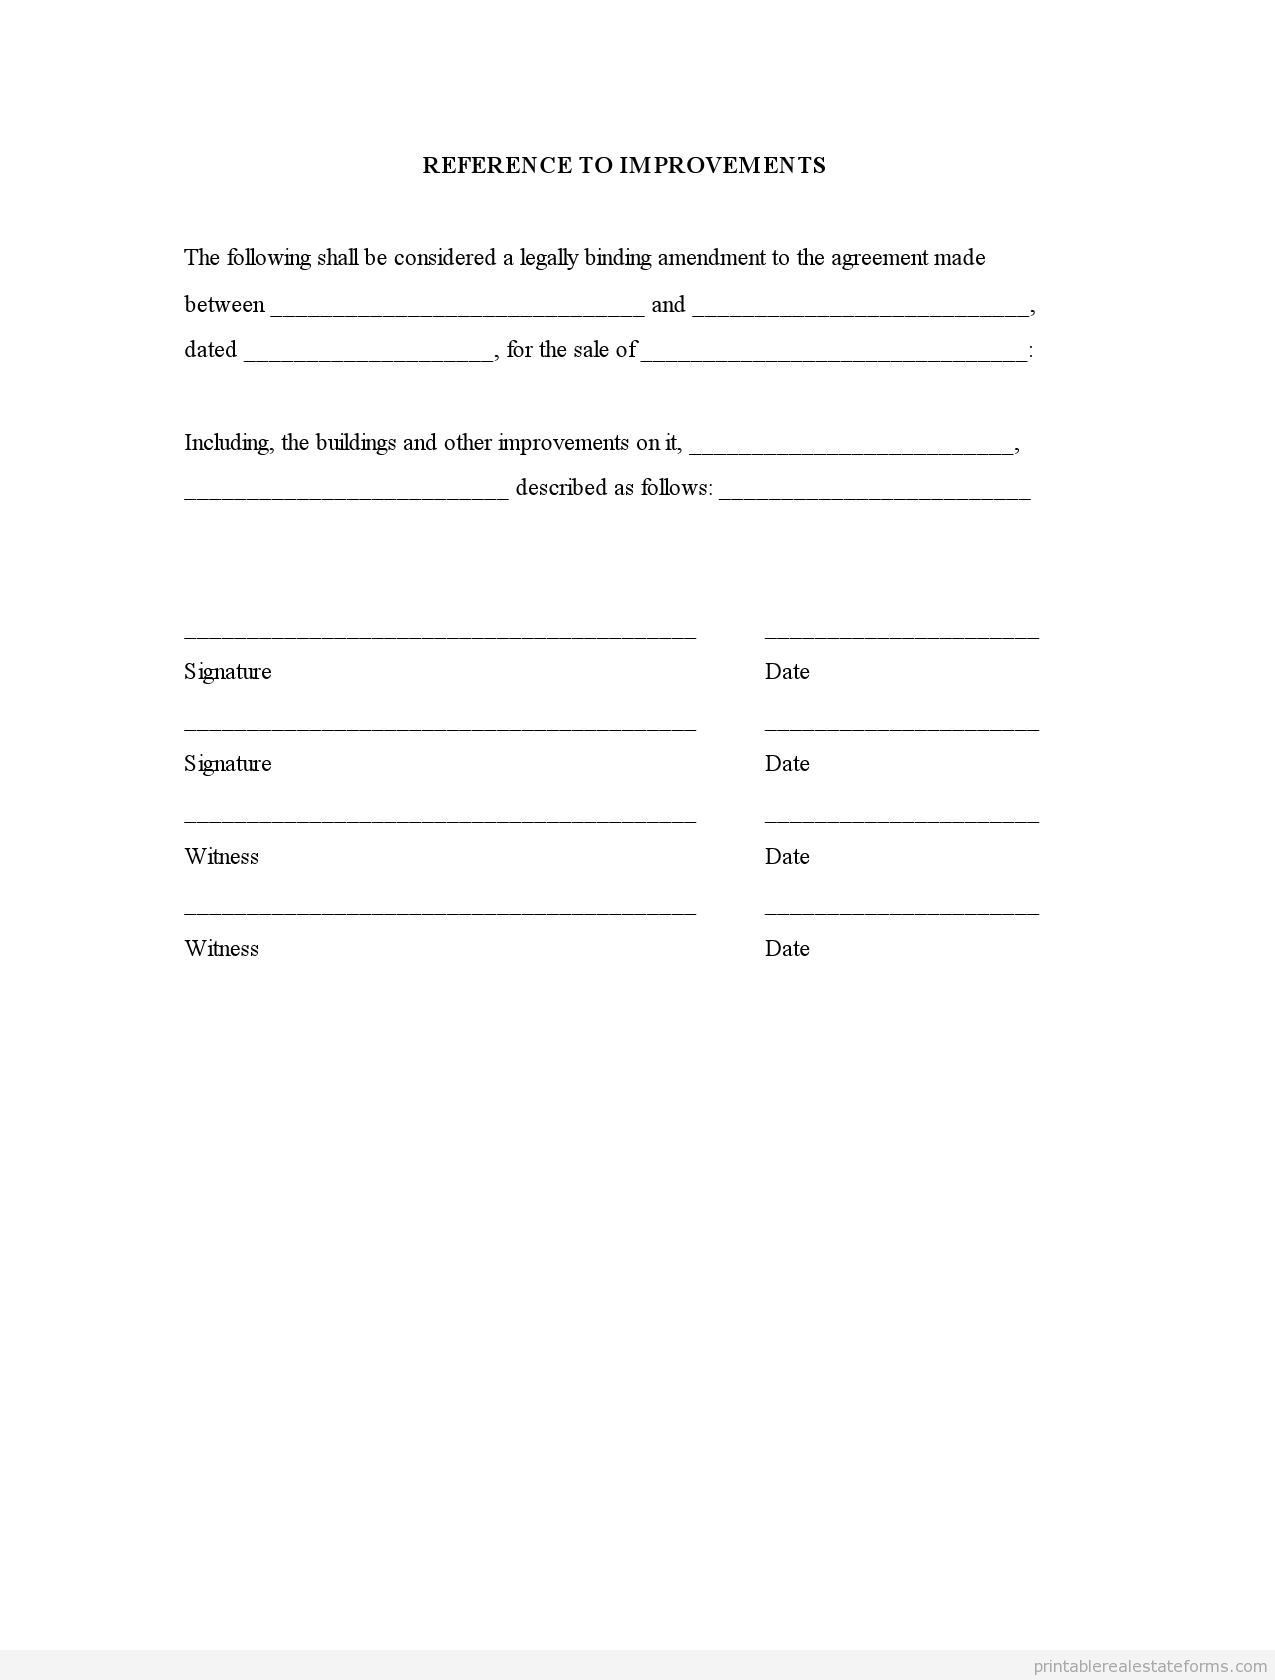 Printable Reference To Improvements Template Sample Forms Printable  Reference To Improvements Template 2015